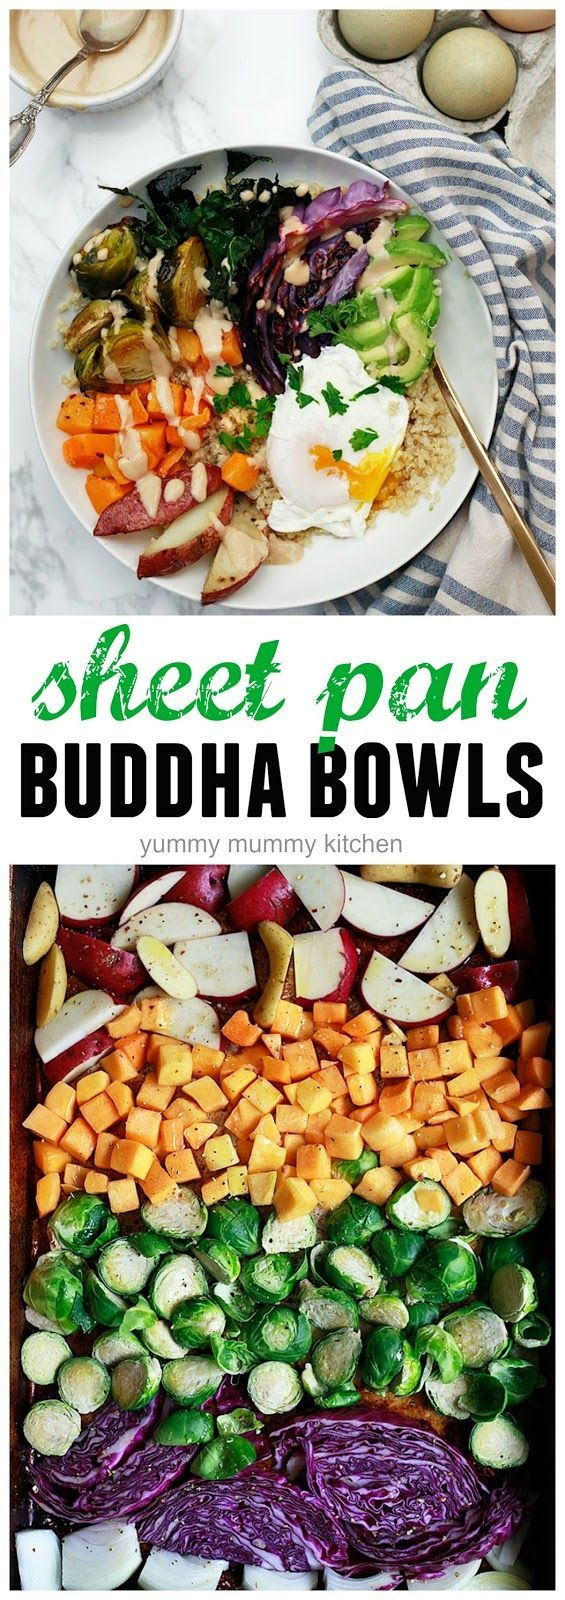 Sheet Pan Buddha Bowls. We love this simple and healthy vegetarian dinner.